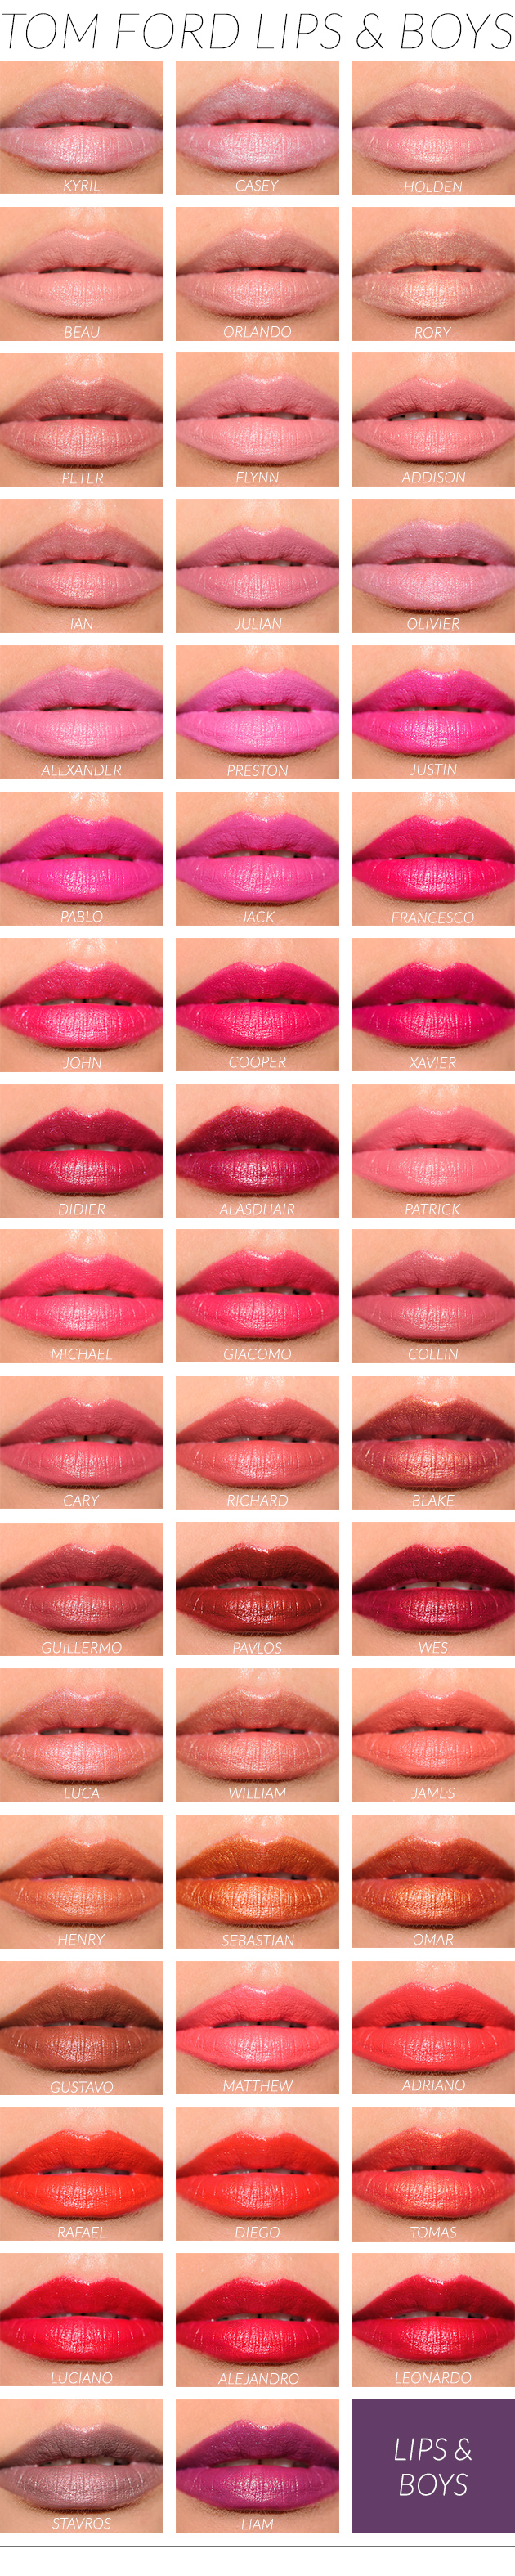 bonus tom ford lips boys lip swatches by color